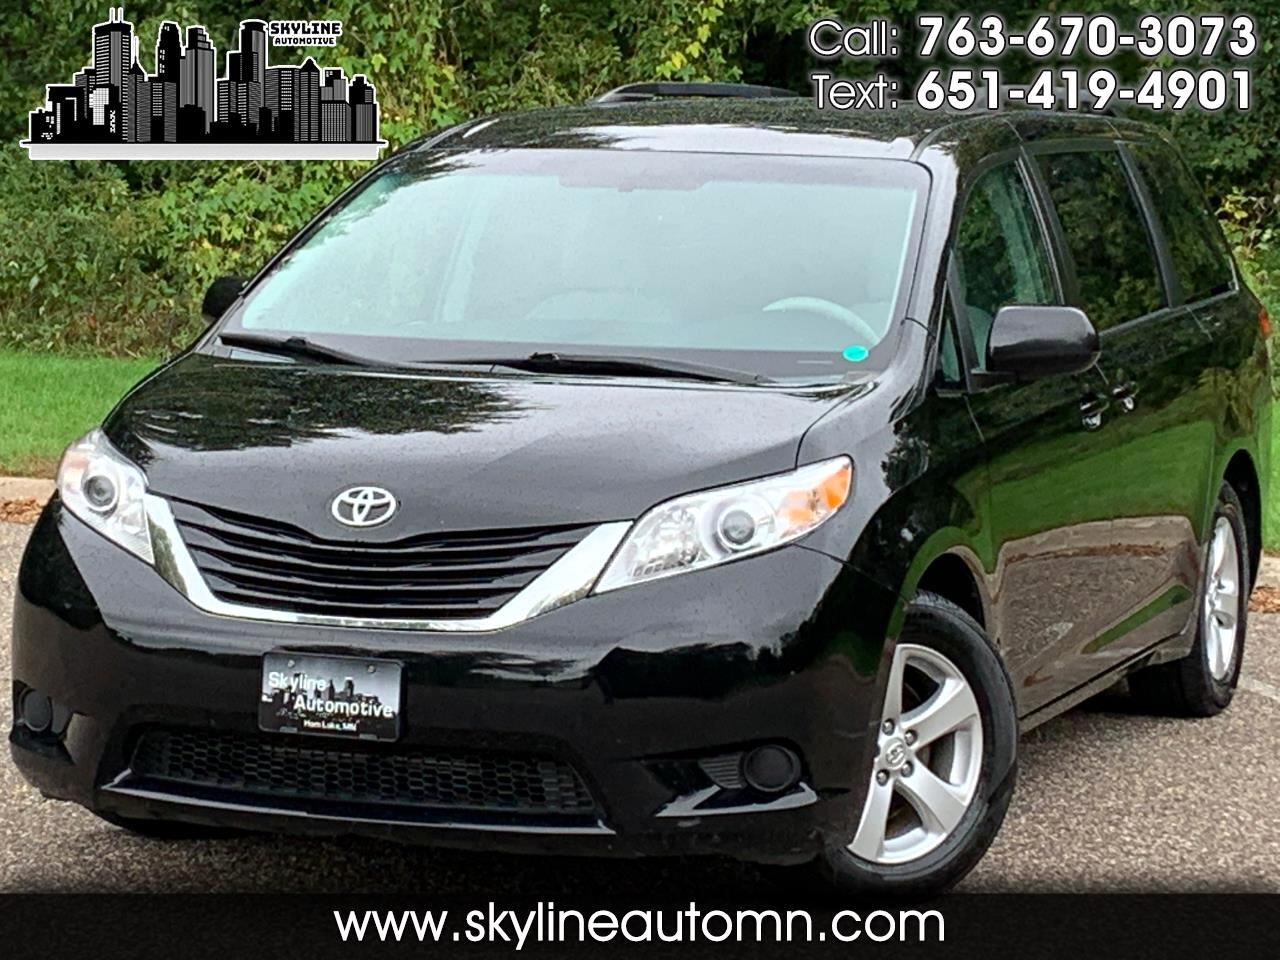 2012 Toyota Sienna 5dr 7-Pass Van V6 LE FWD (Natl)